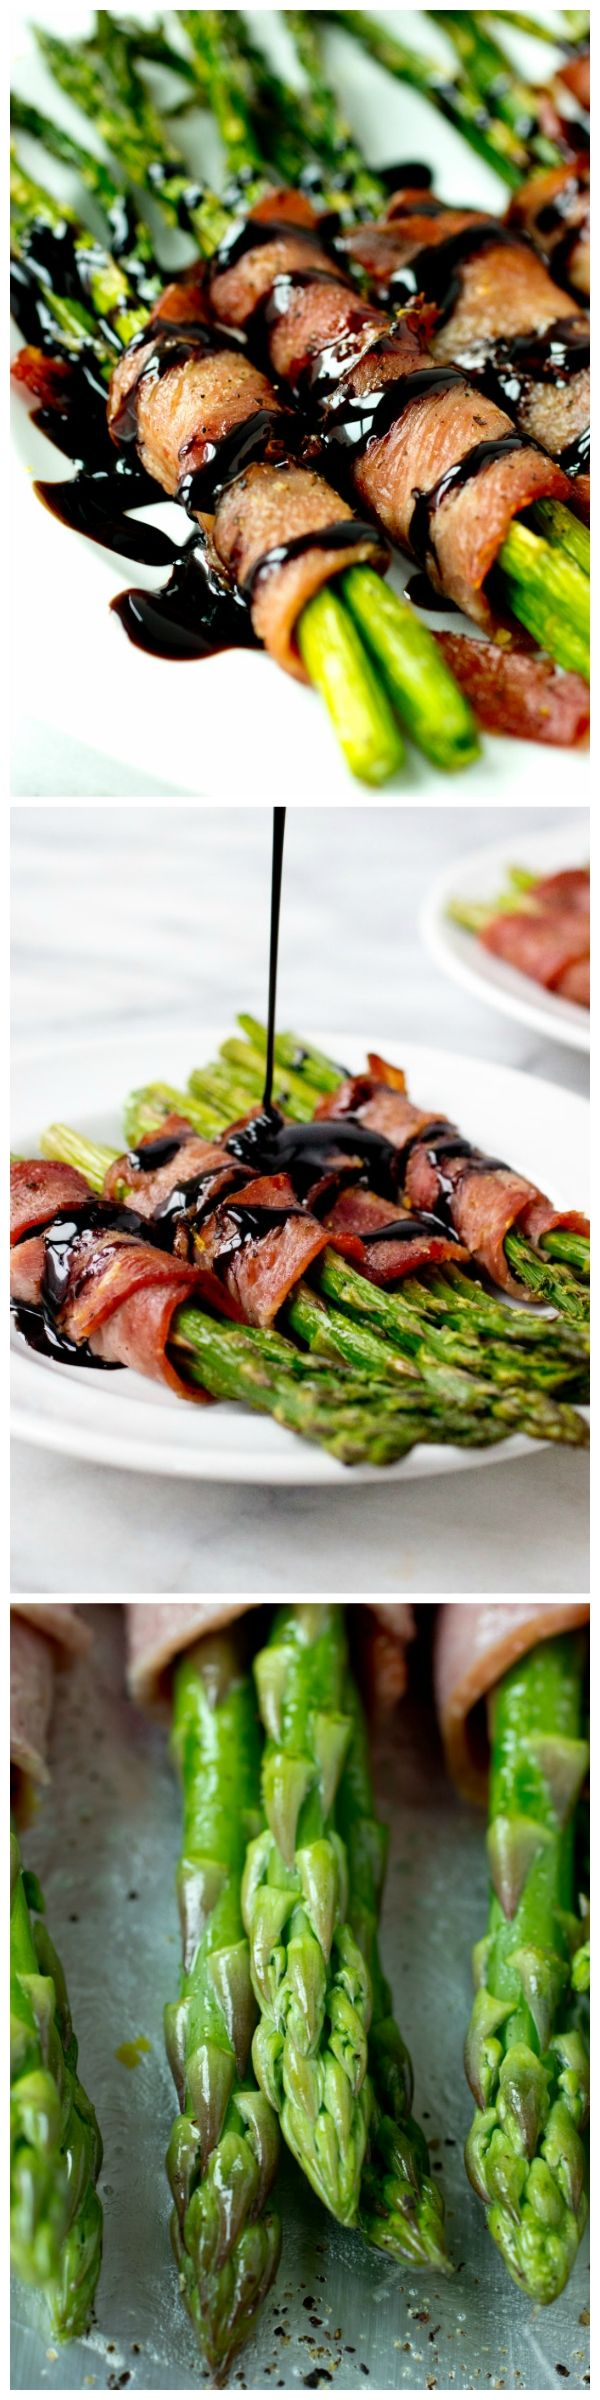 Bacon Wrapped Asparagus with Easy Homemade Balsamic Reduction - Vegetables are so much easier to get down the hatch when they're wrapped in bacon and drizzled in easy homemade balsamic reduction syrup!